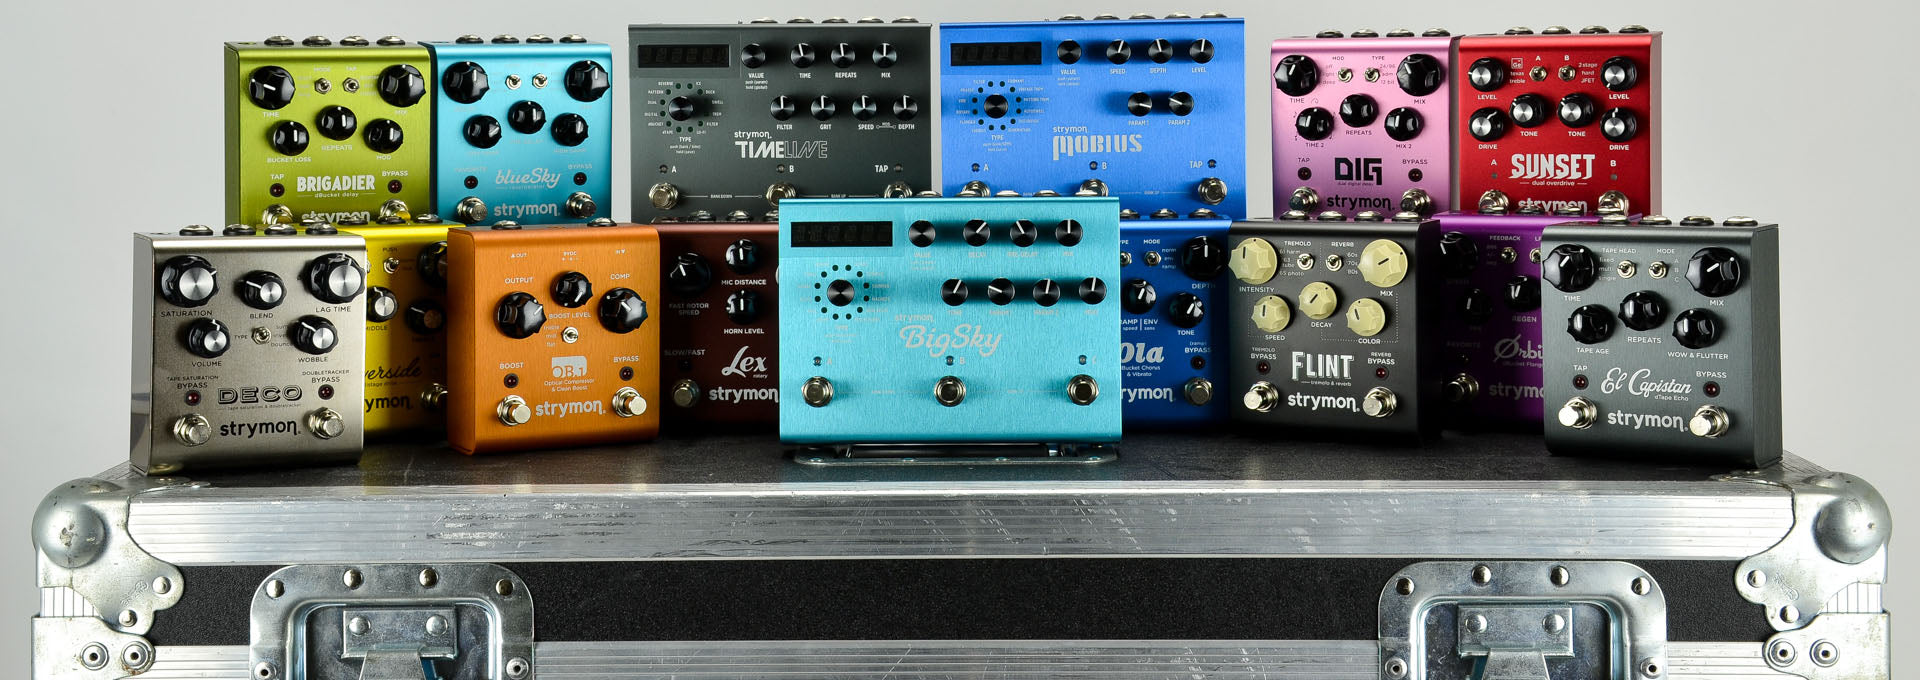 Strymon Effects